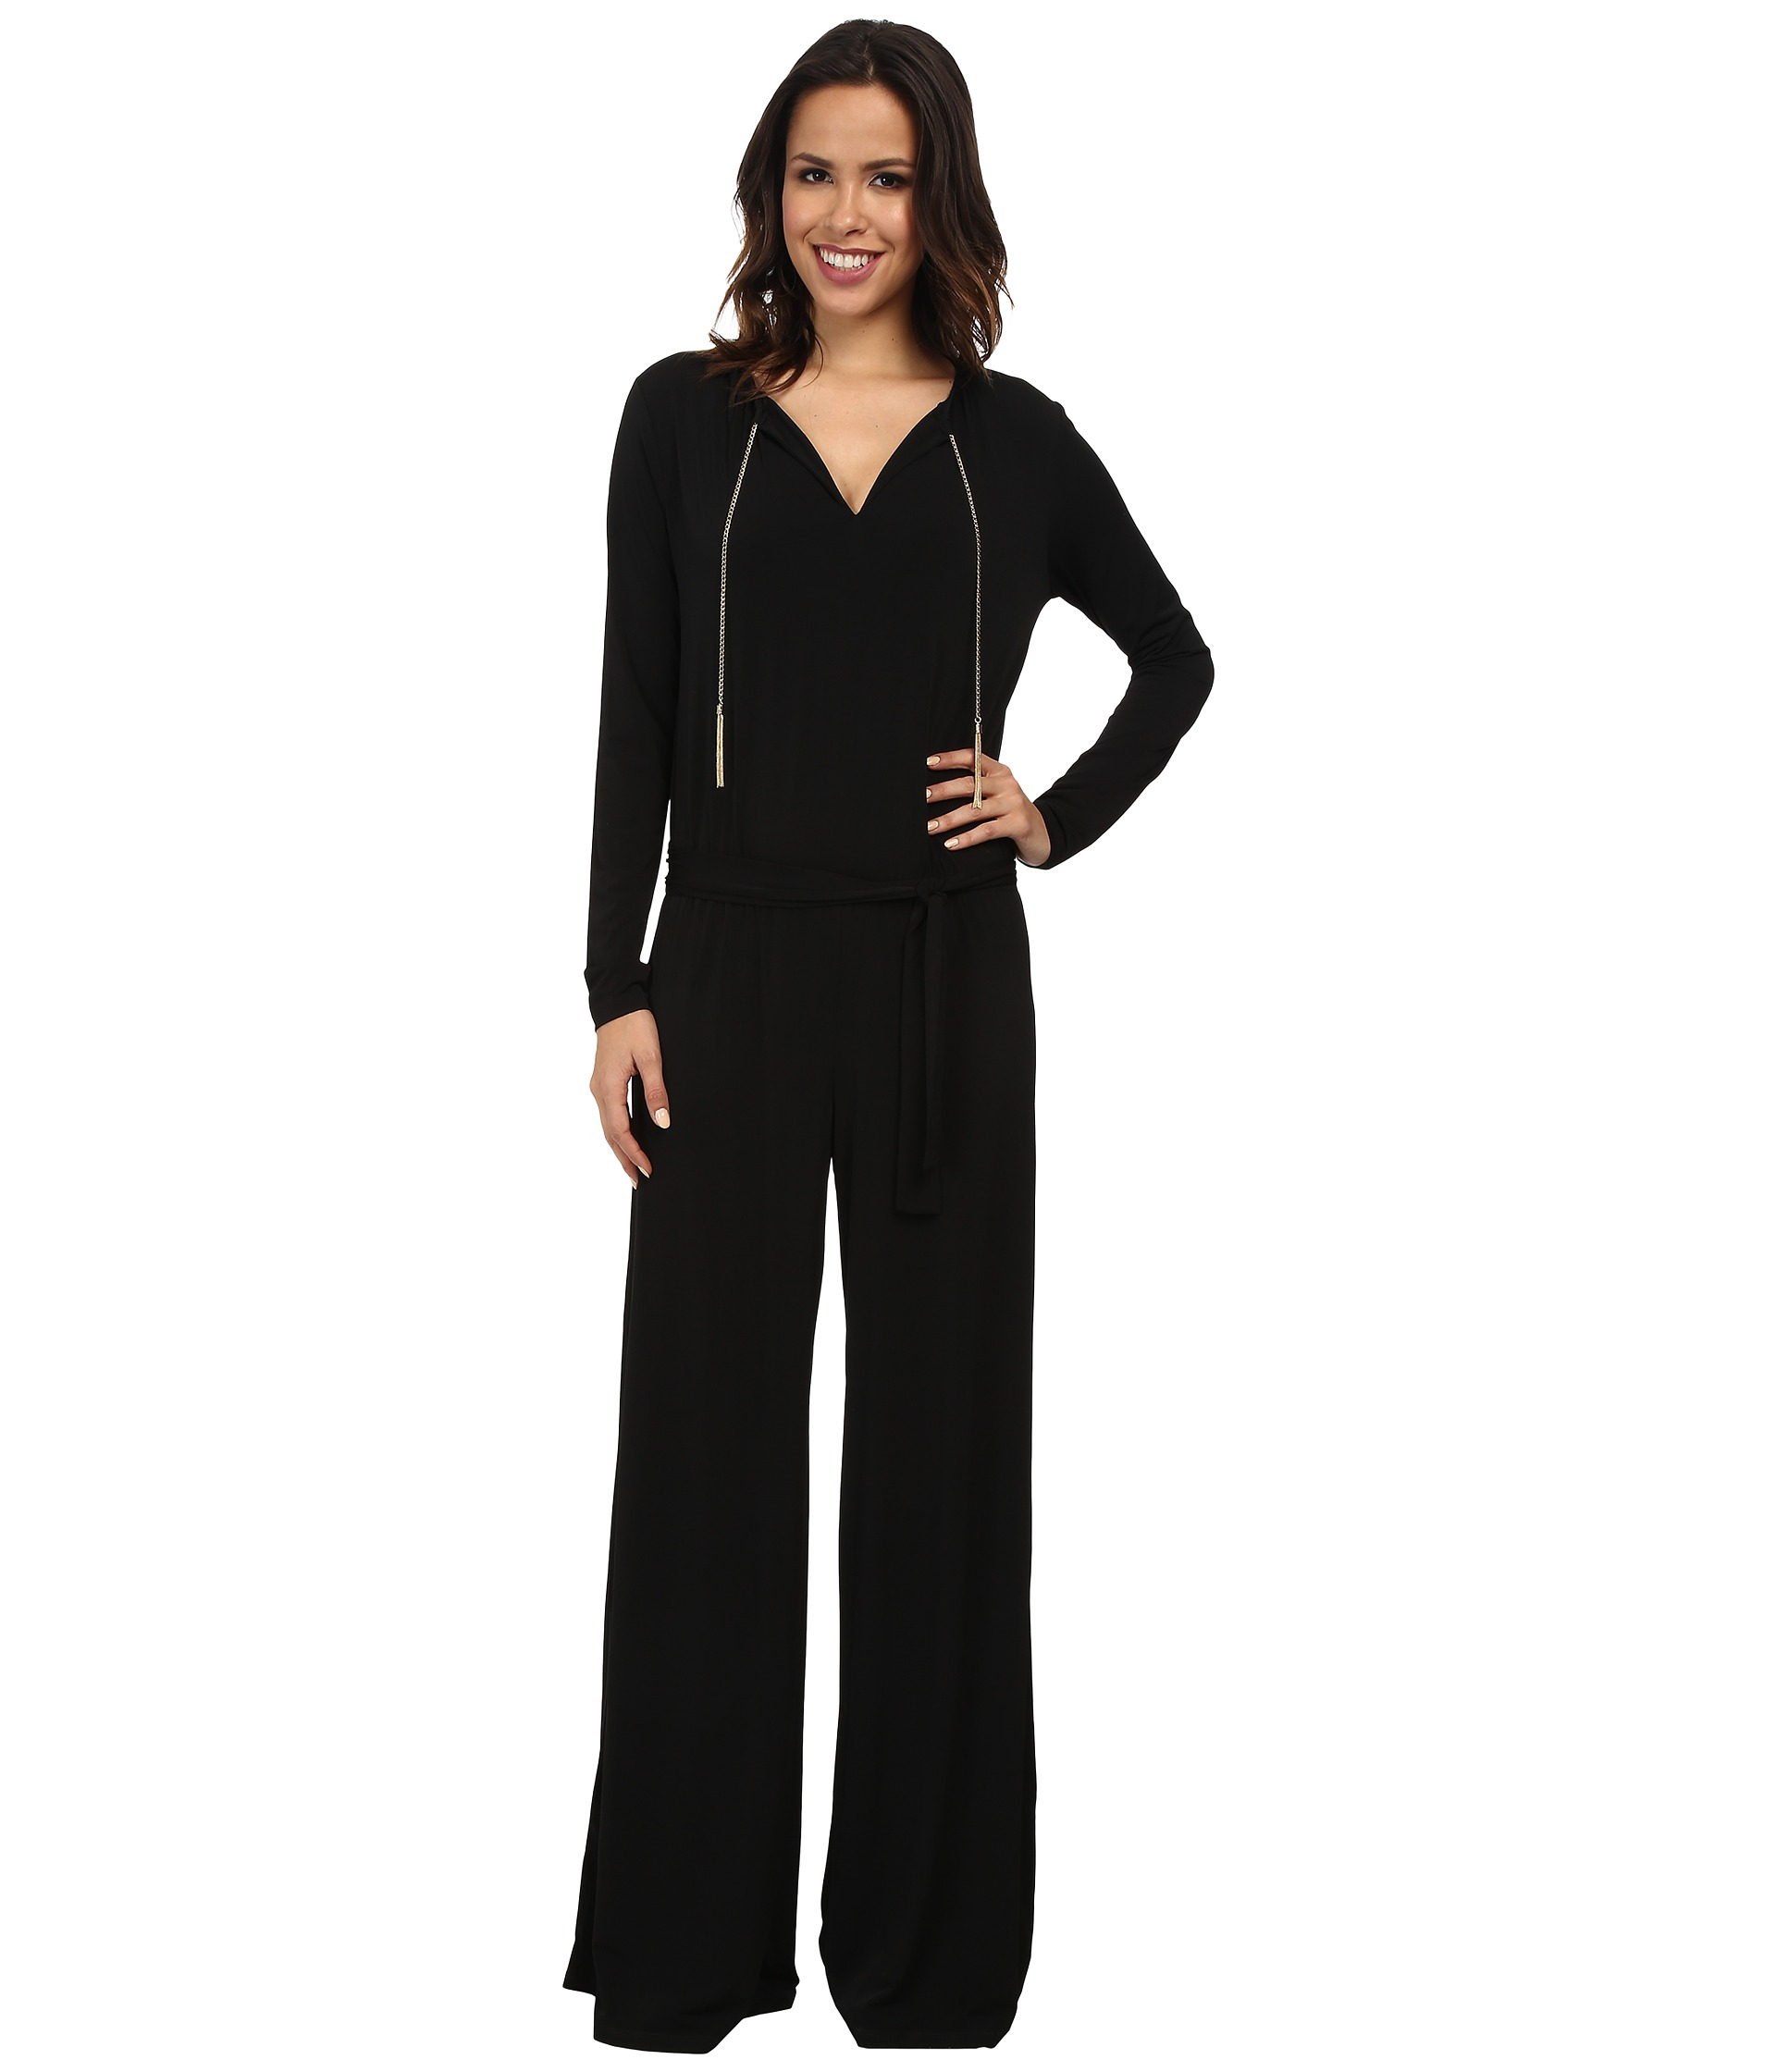 michael michael kors long sleeve chain neck wide leg jumpsuit shipped free at zappos. Black Bedroom Furniture Sets. Home Design Ideas